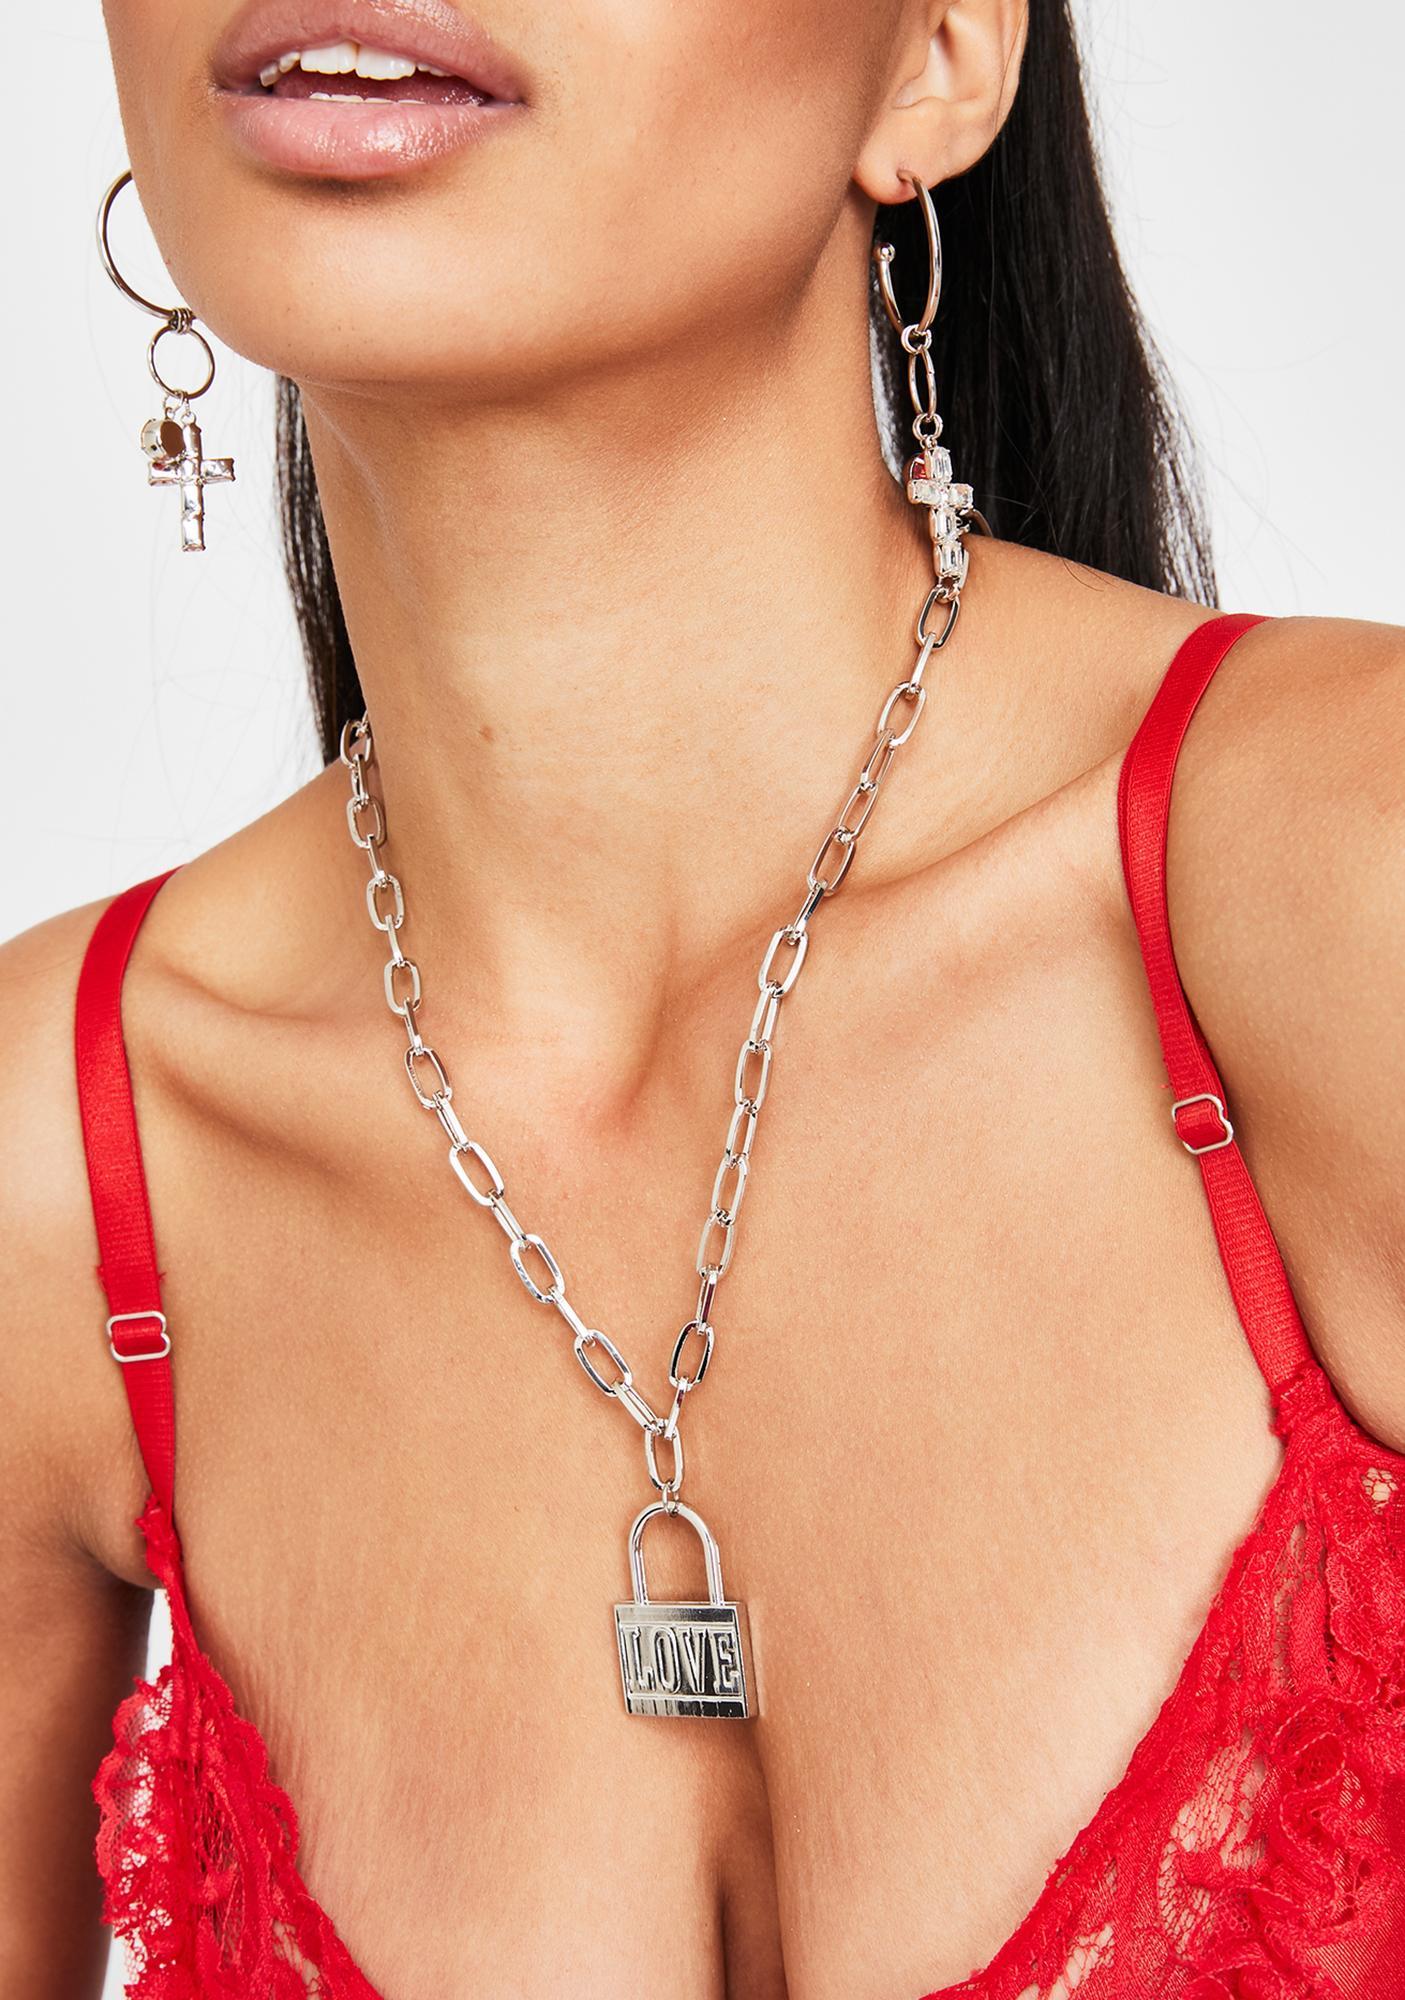 Worthy Of Love Chain Necklace